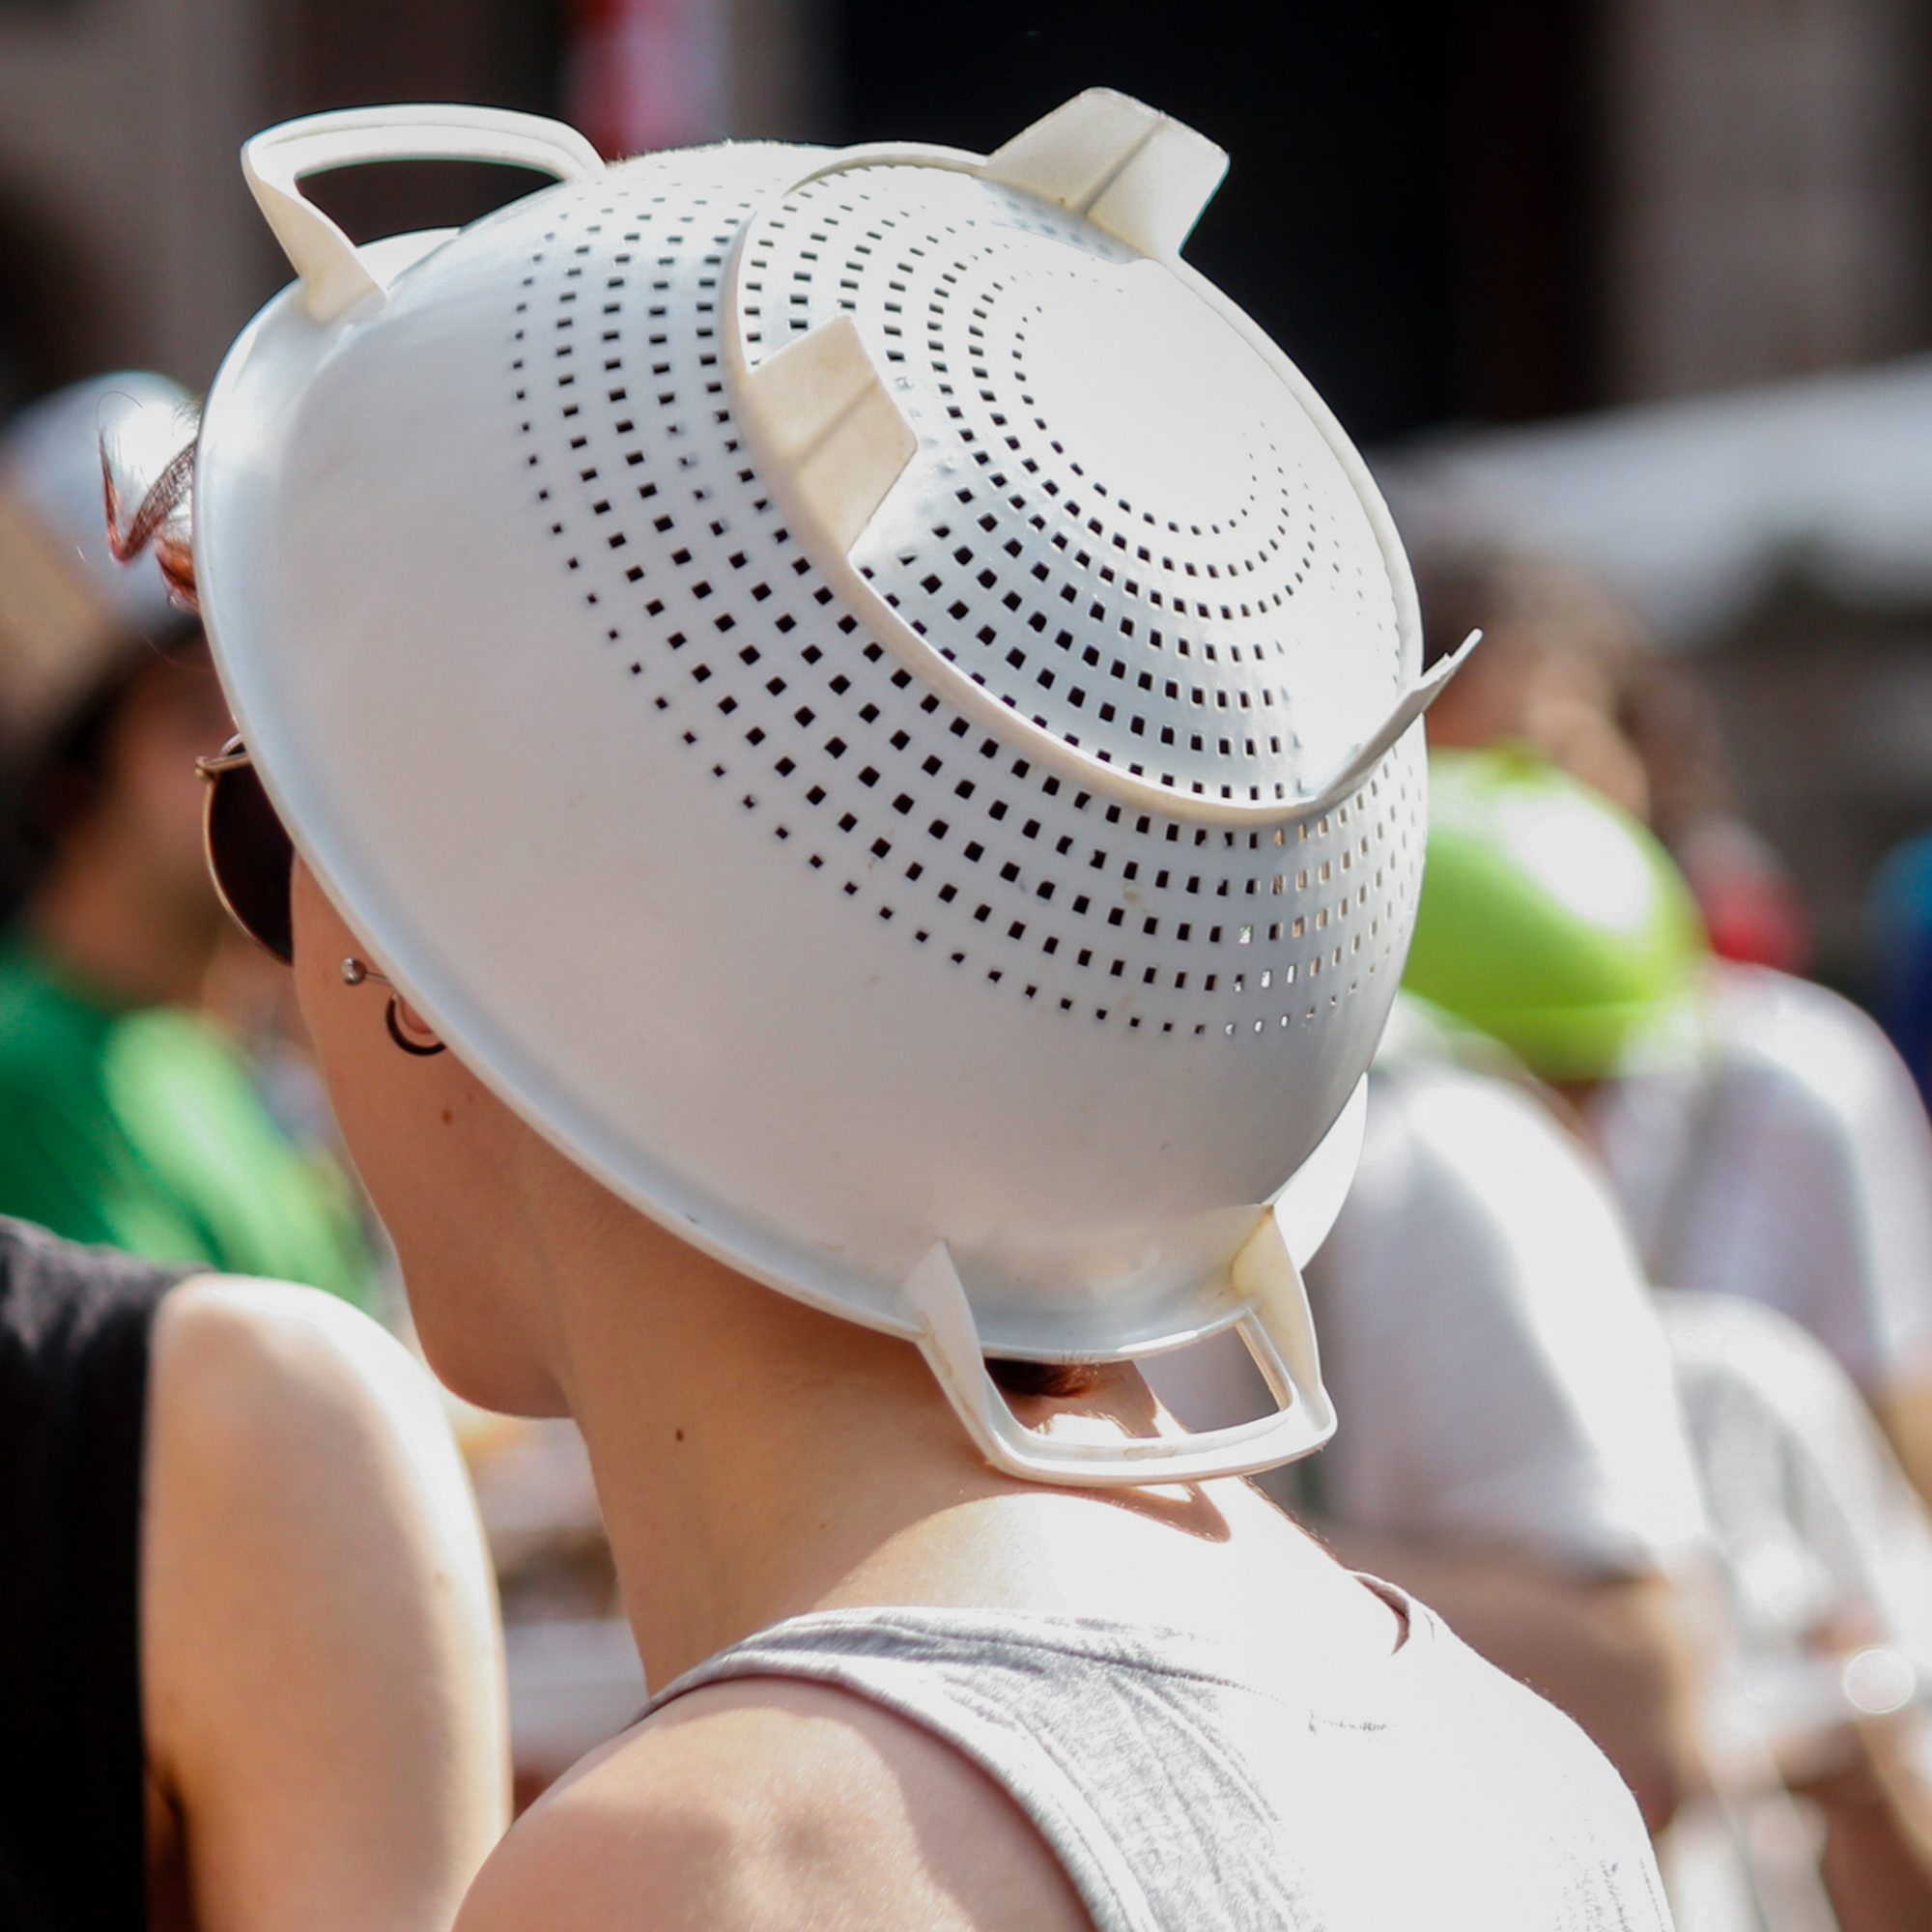 FWX MASS WEAR A COLANDER ON YOUR HEAD